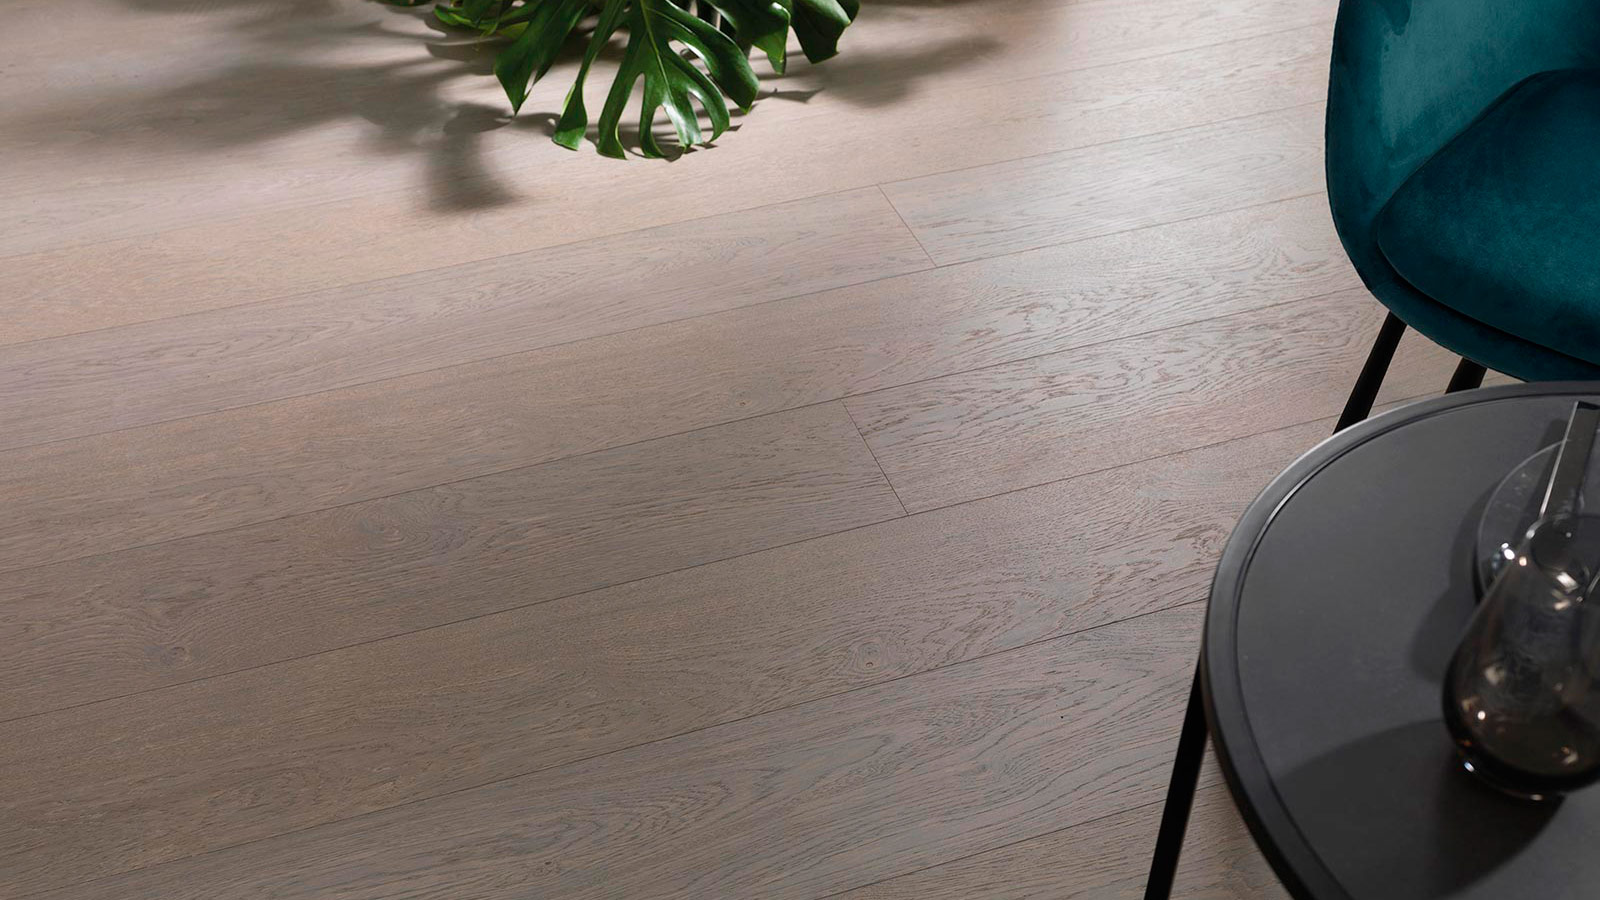 How to clean natural wood flooring?